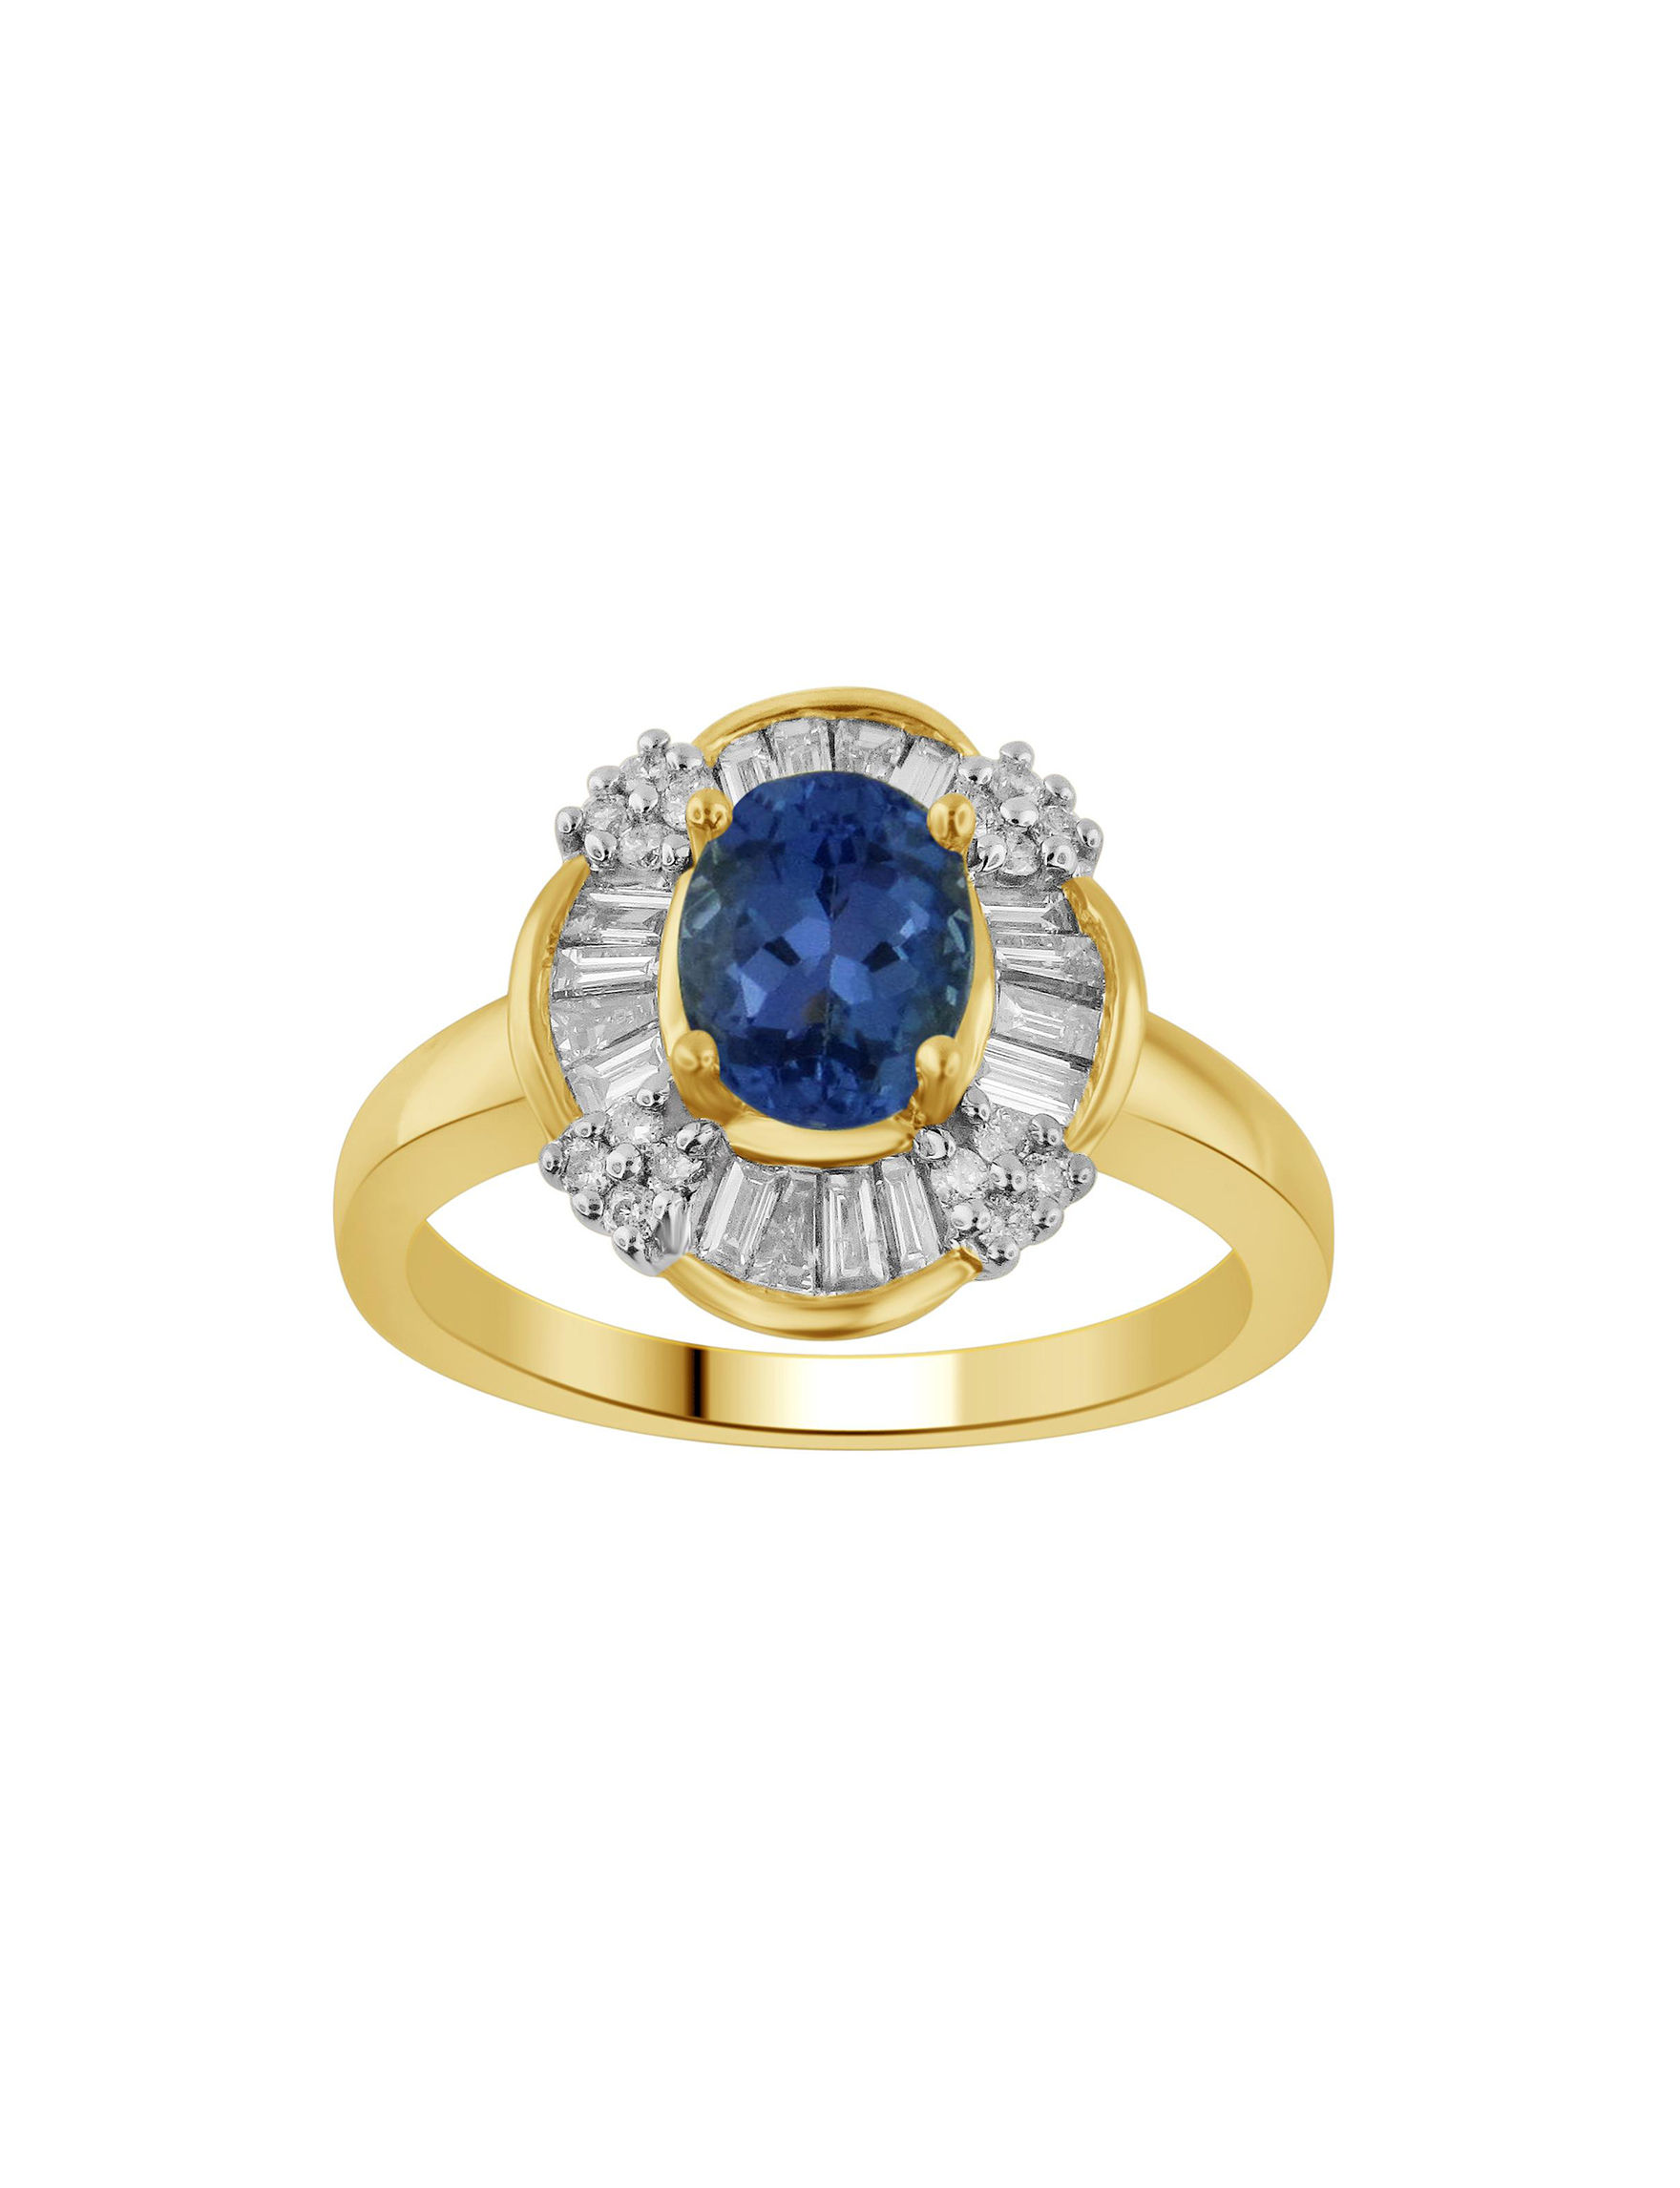 Kiran Gold Rings Fine Jewelry